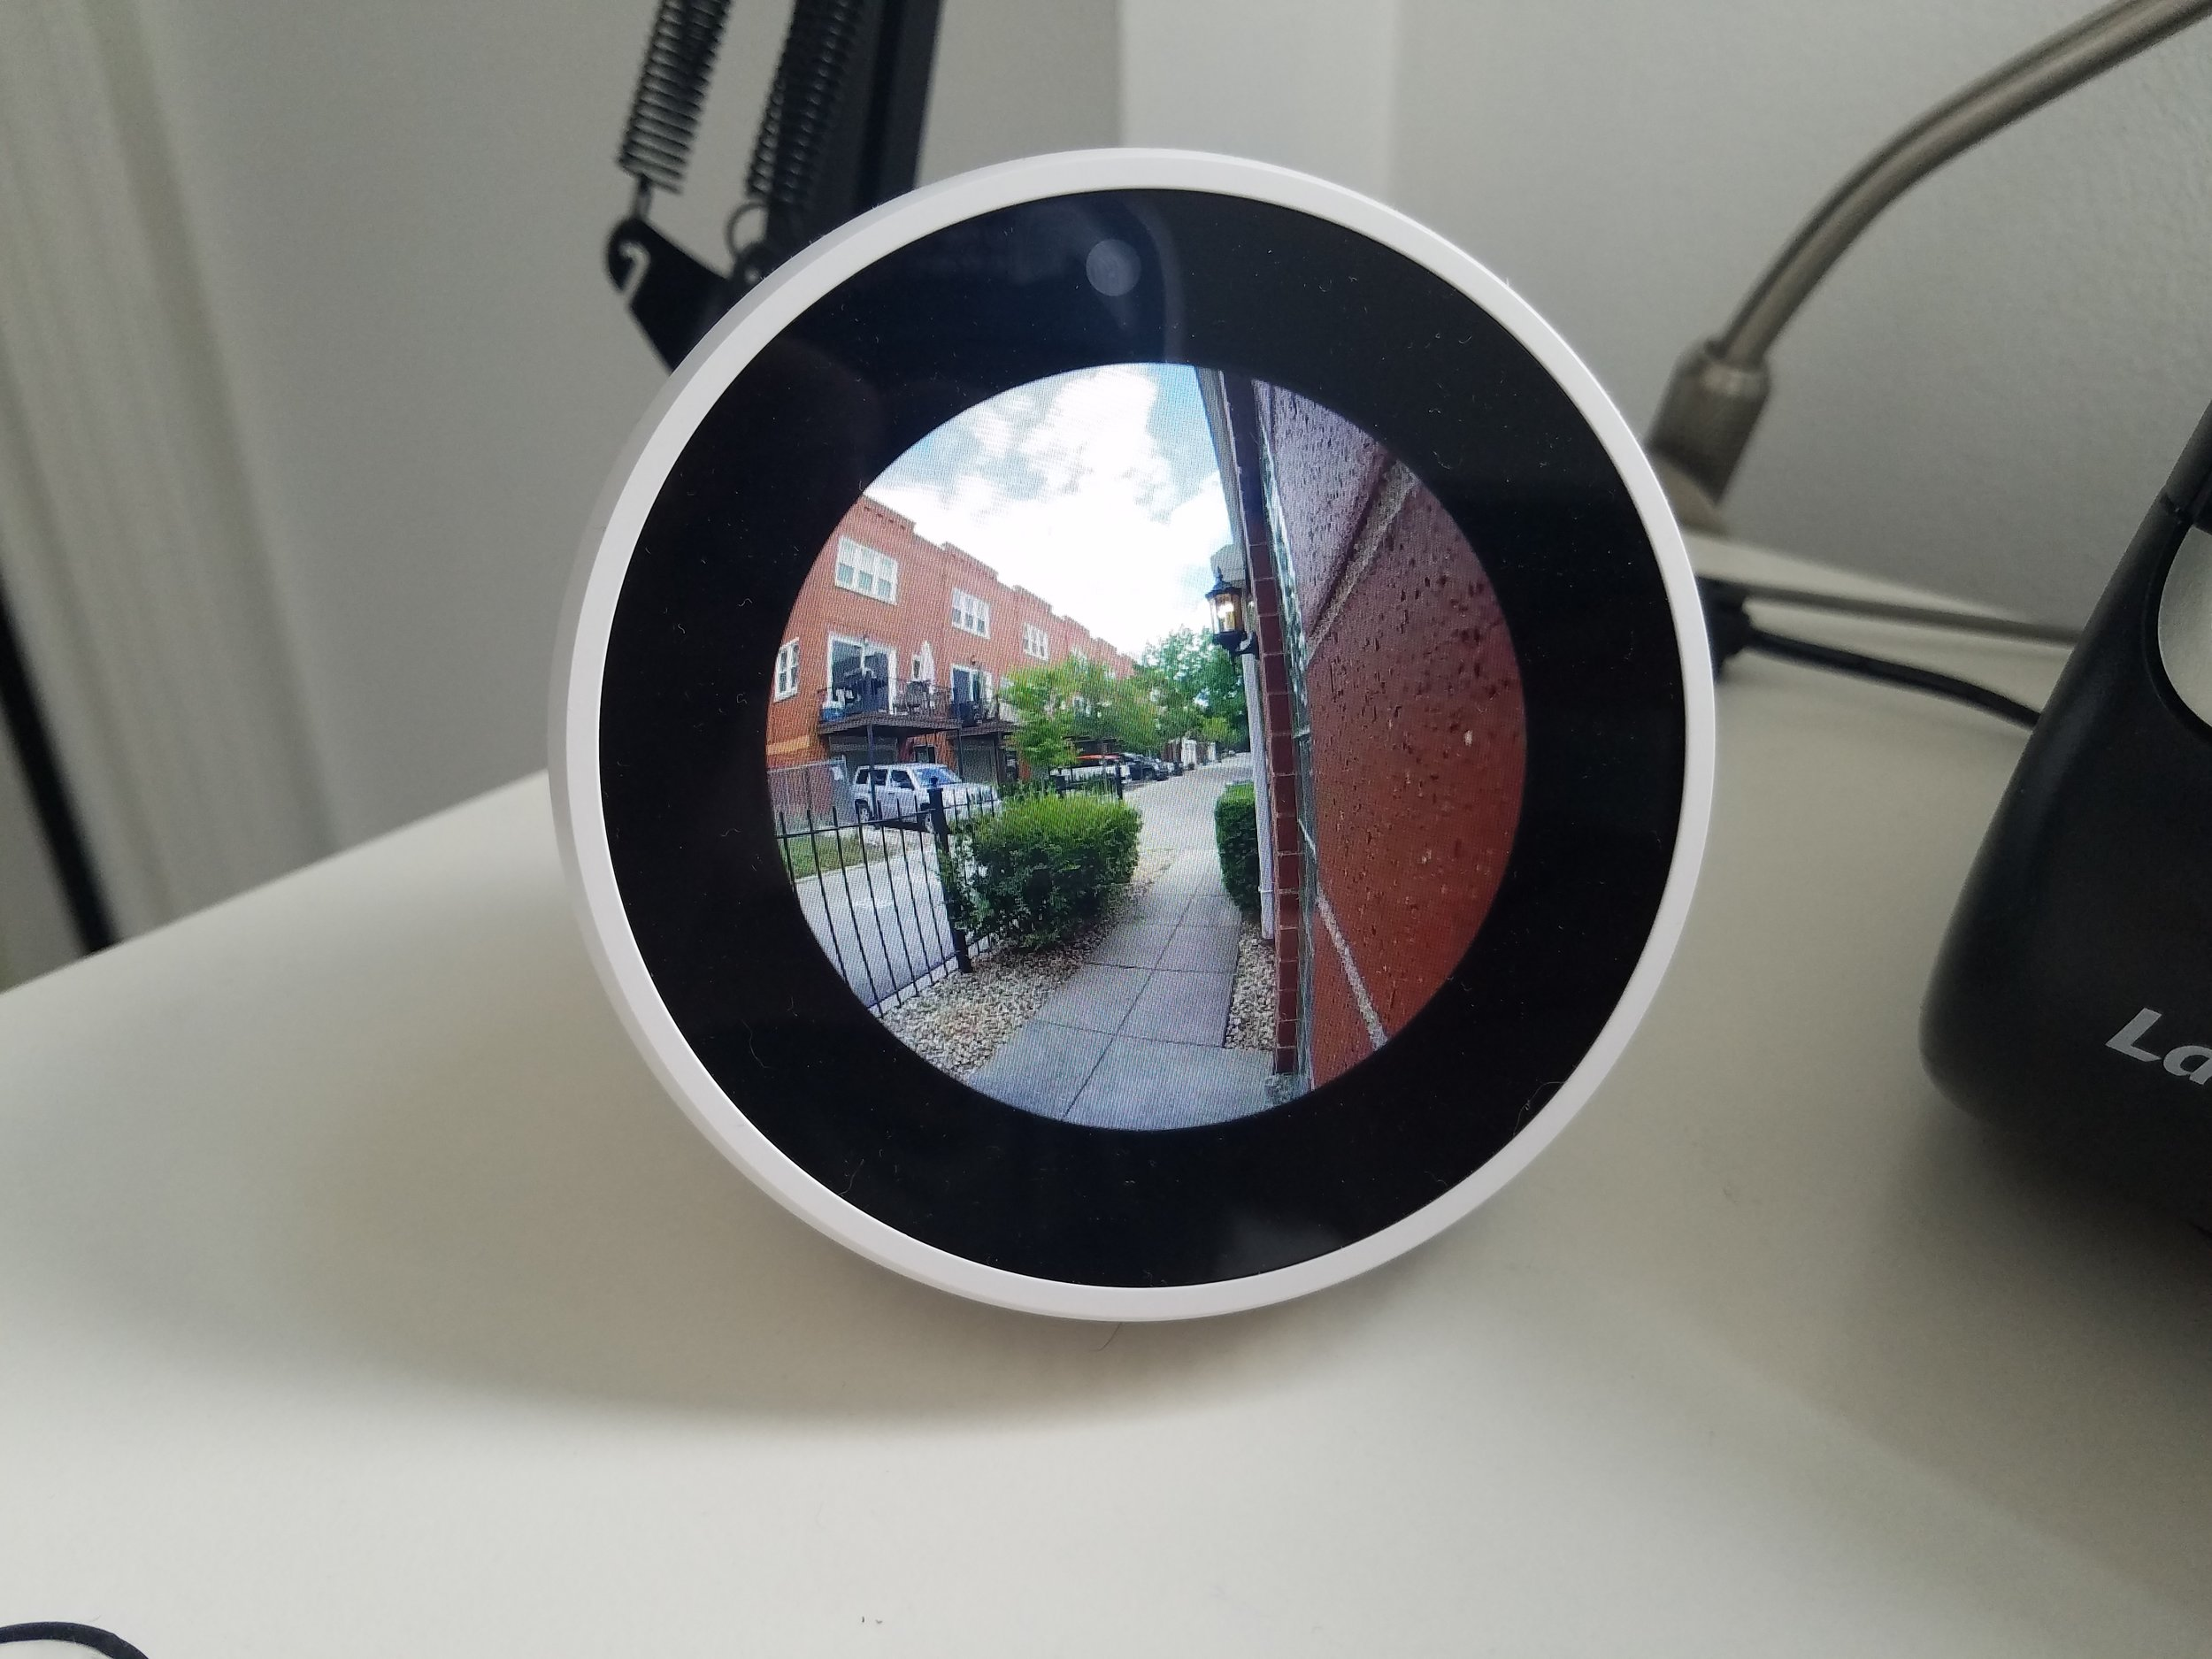 Does Arlo Work with Alexa? You can pull up your Arlo feed on your Echo Show or Echo Spot.